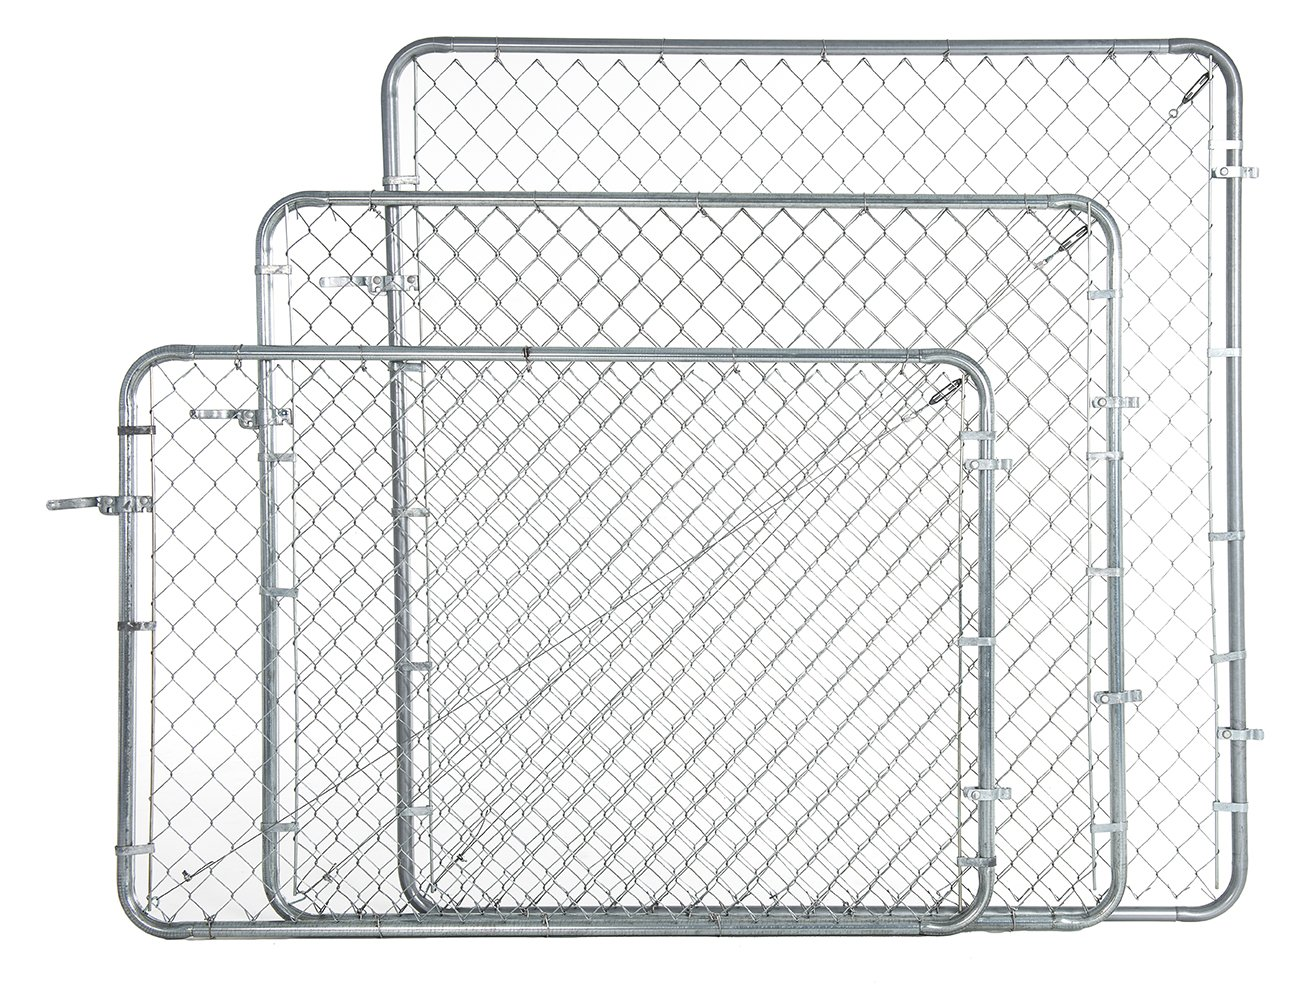 Fit-Right Chain Link Fence Walk-through Gate Kit (24''-72'' wide x 4' high) by Adjust-A-Gate (Image #2)